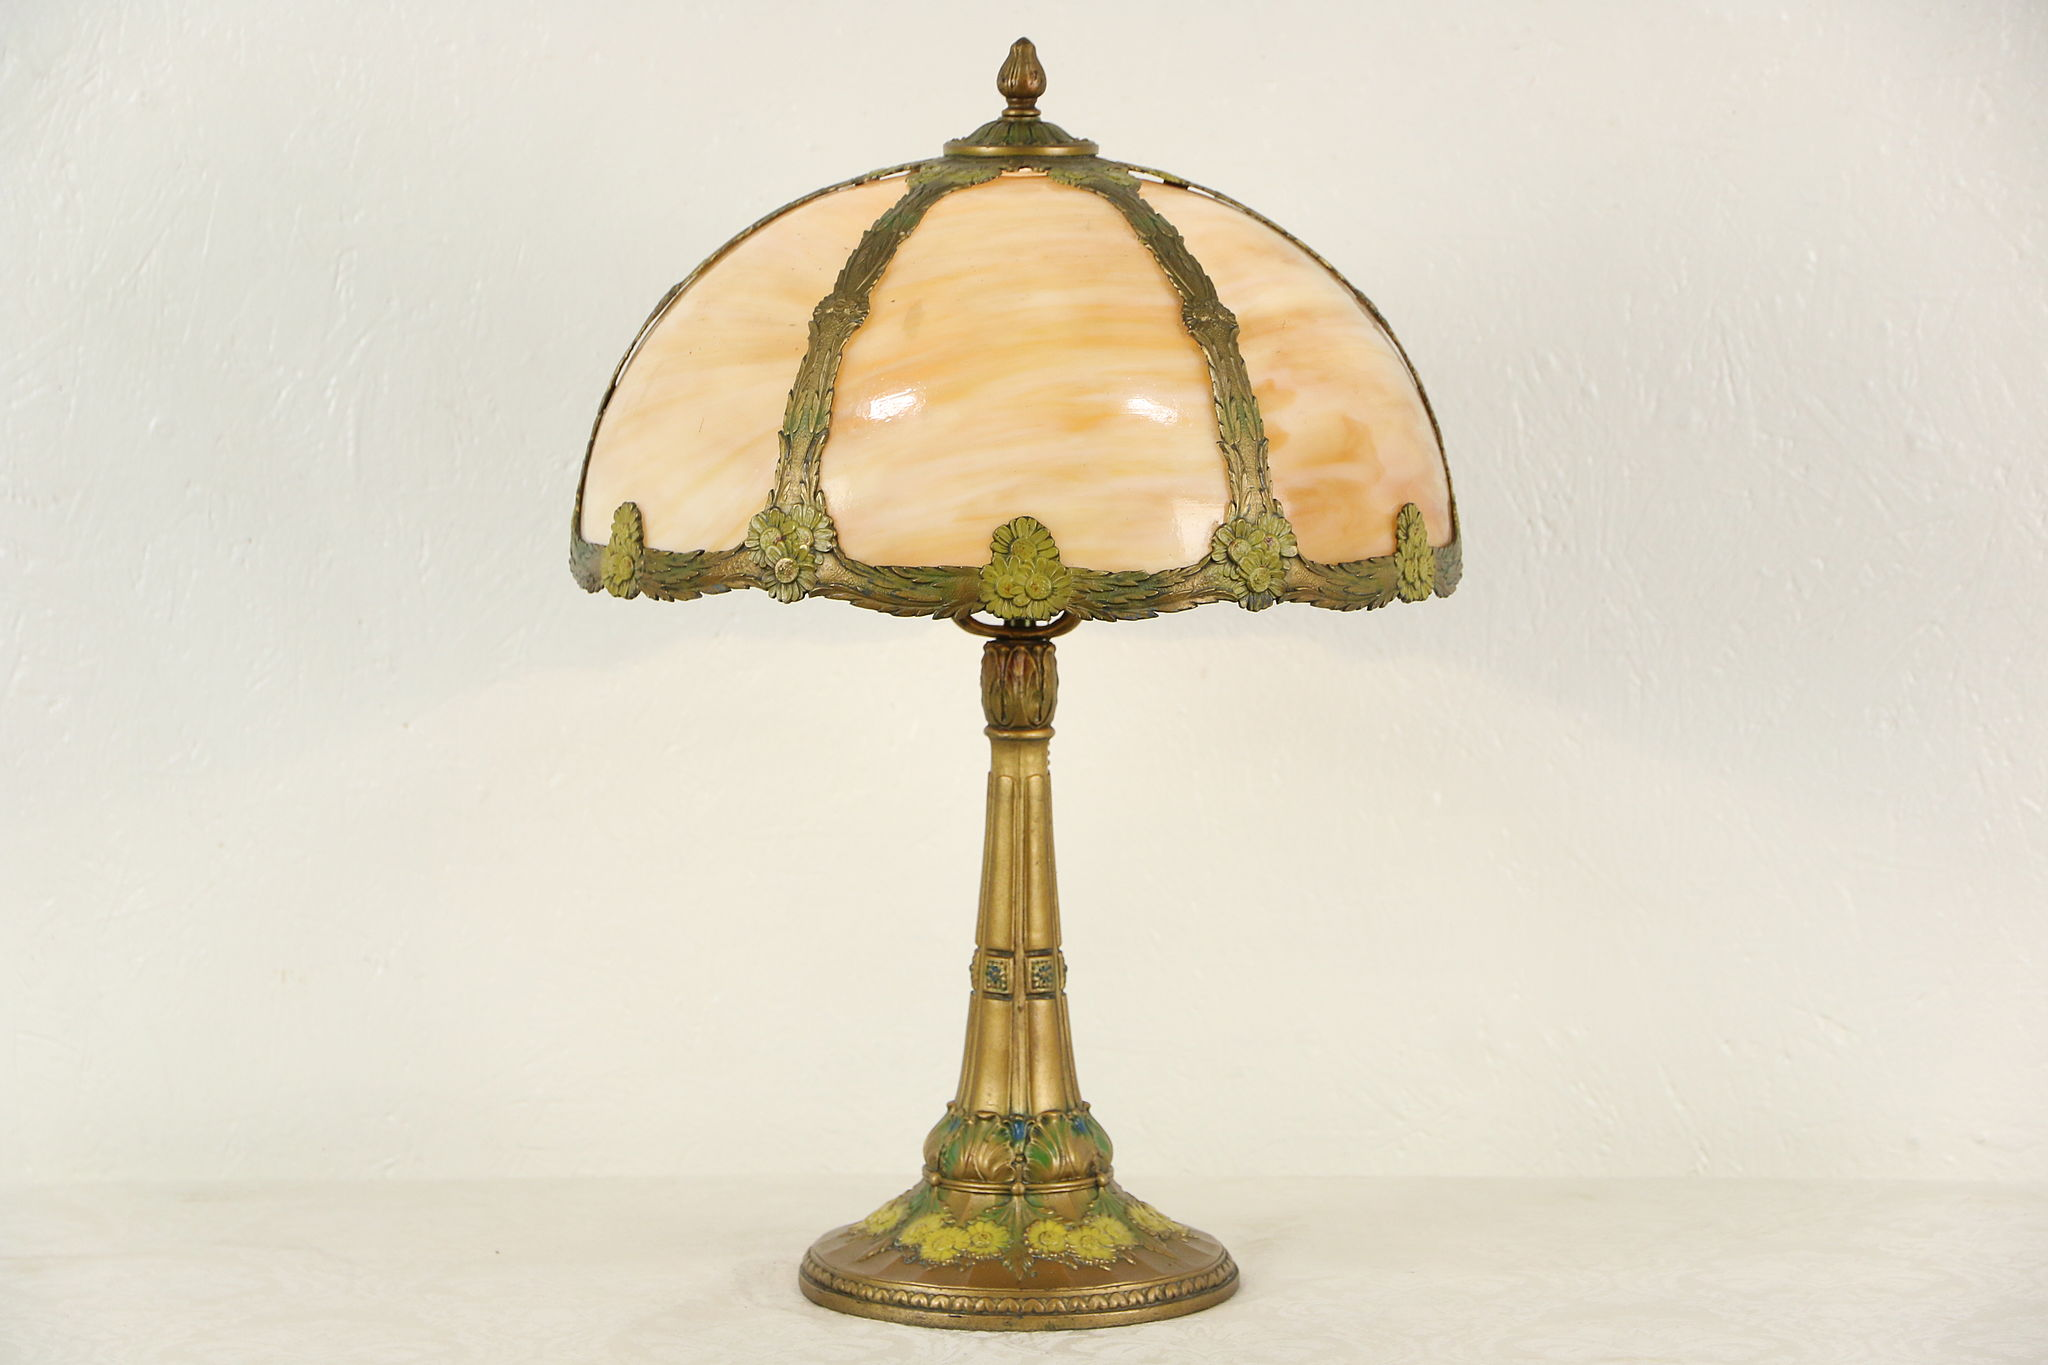 Sold Curved Stained Glass 1915 Antique Lamp Base With Original Paint Harp Gallery Antiques Furniture